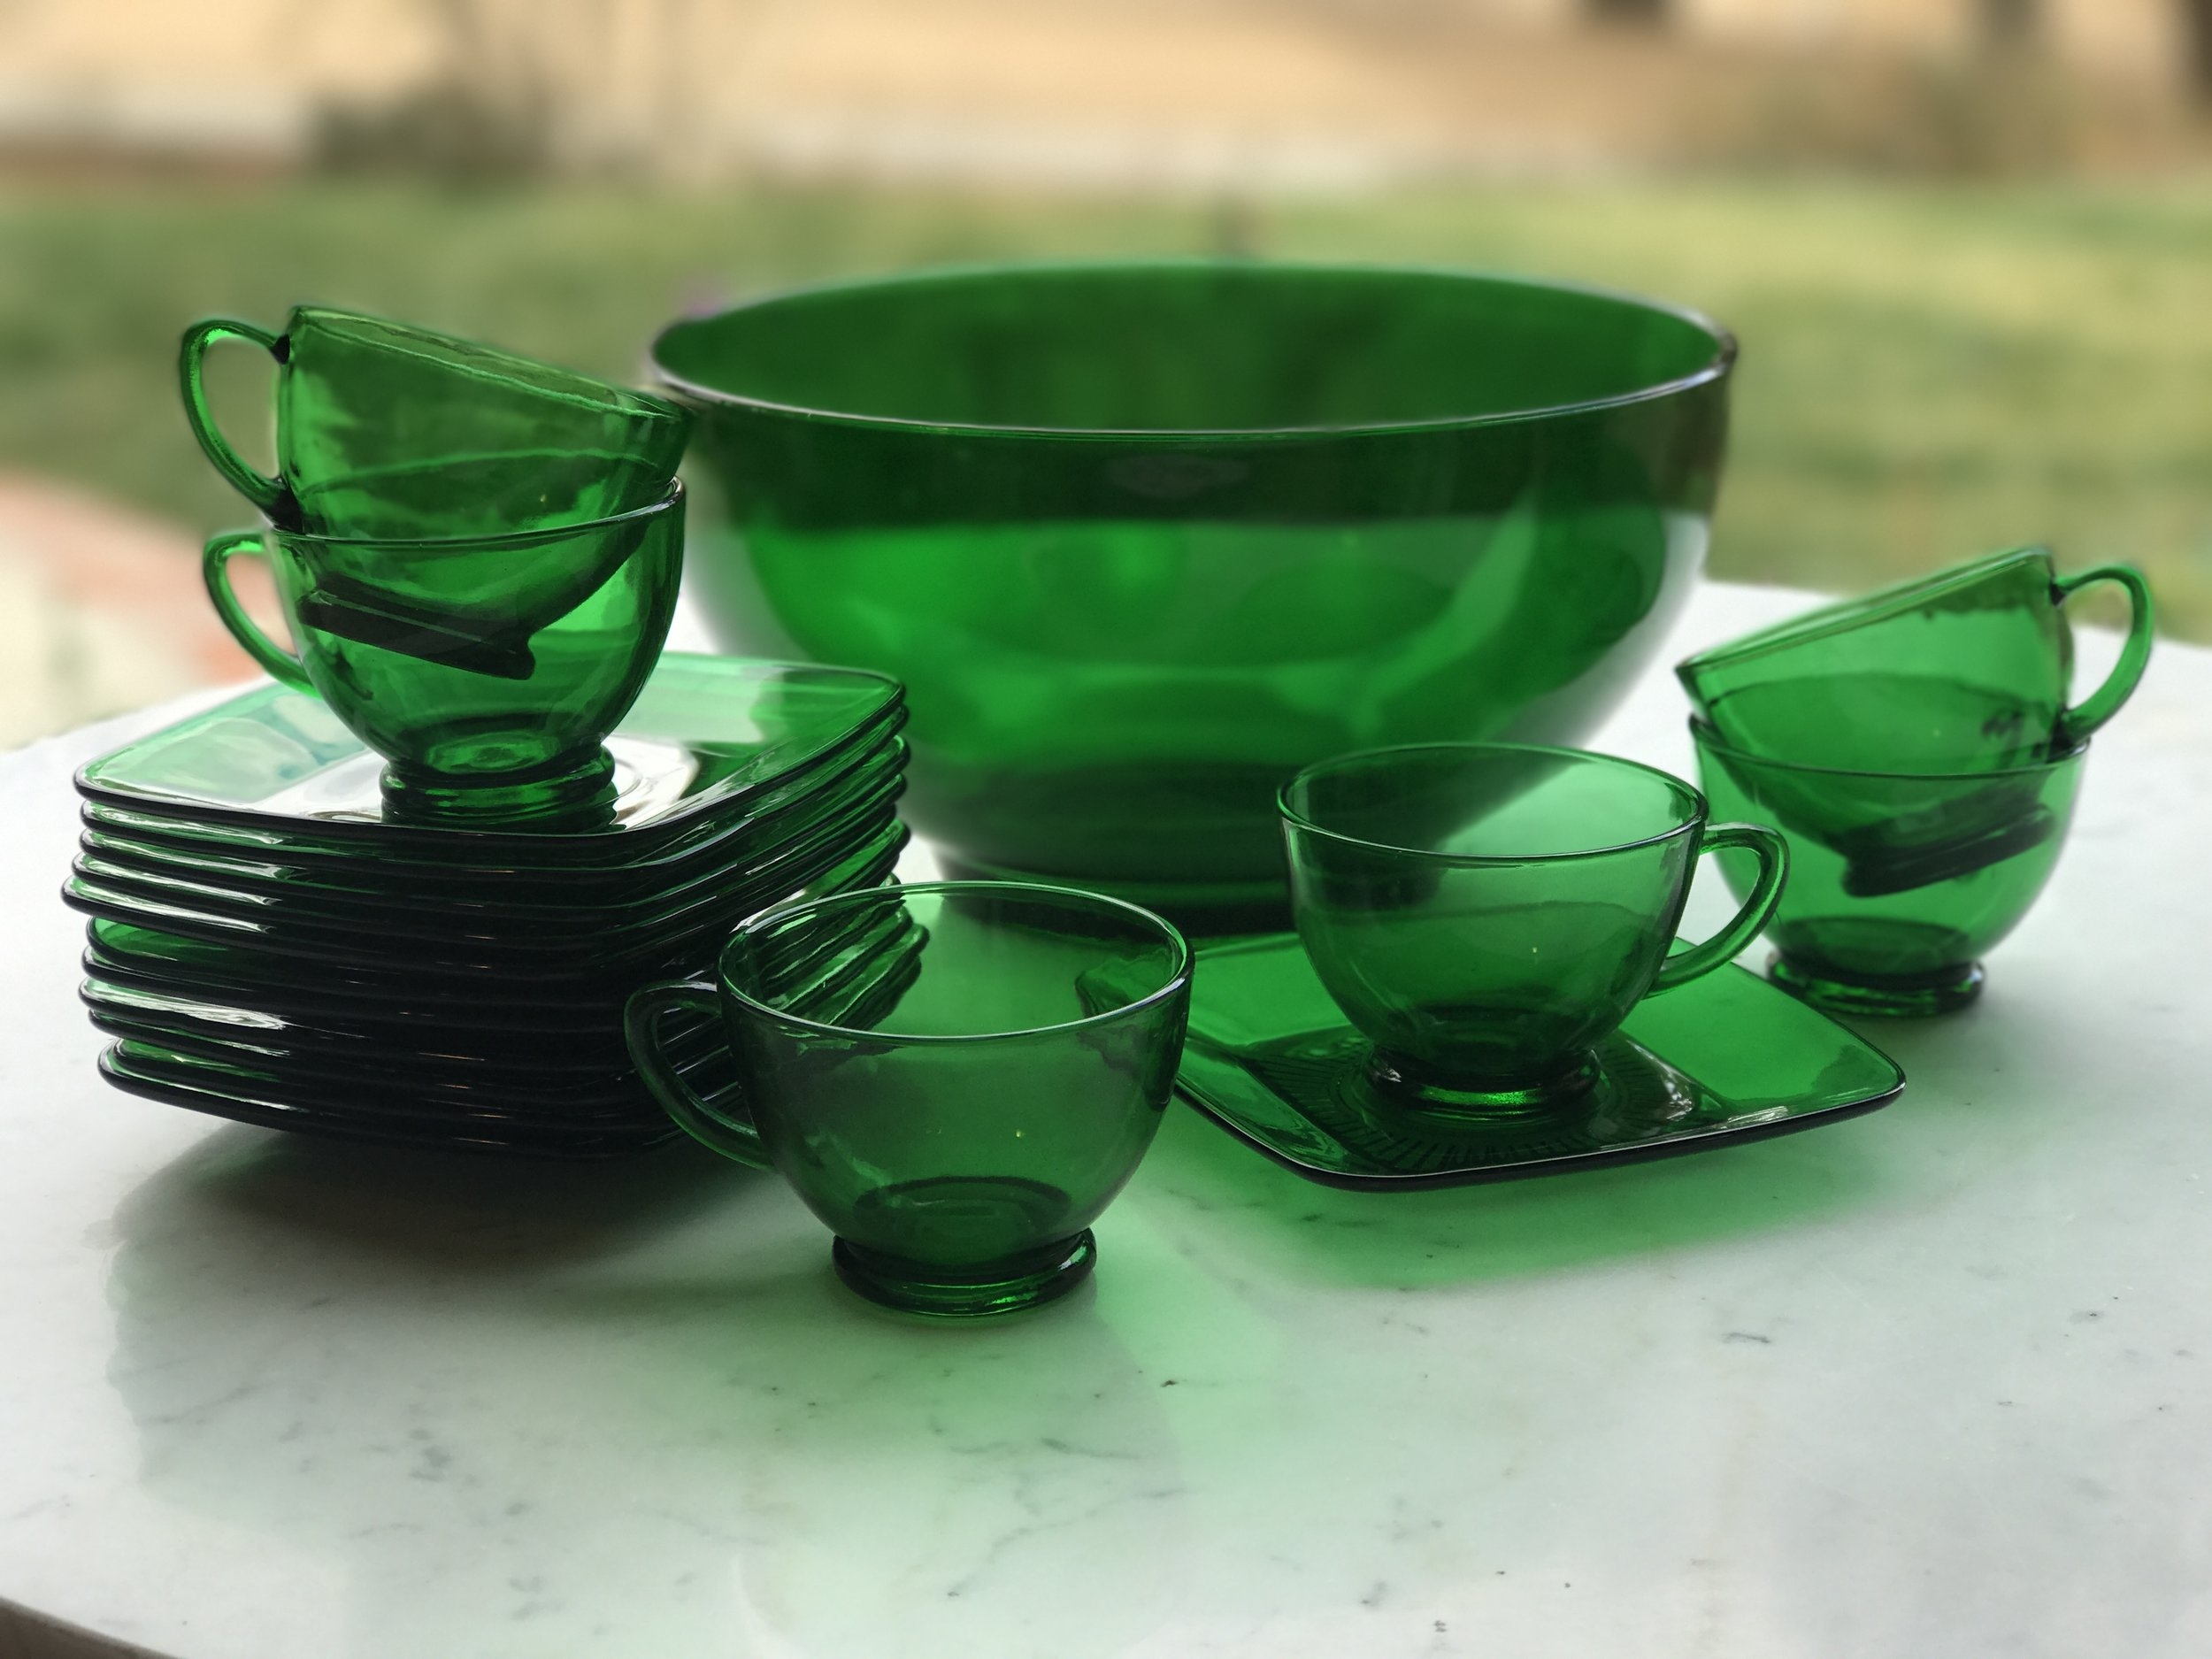 Emerald green Libby Glass punch bowl with cups and square saucers. Rental Temecula Valley.